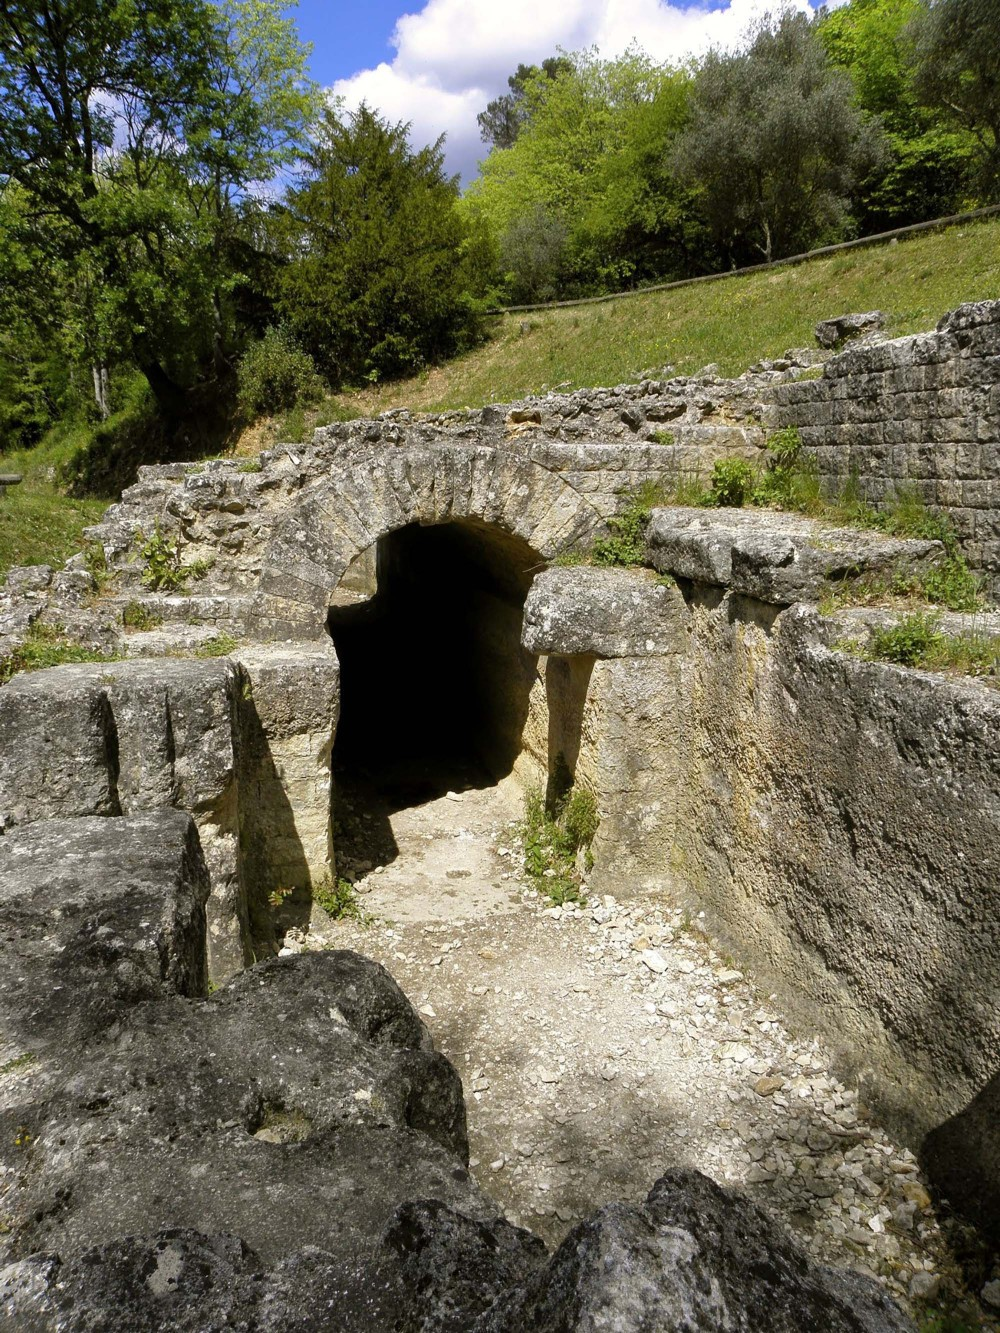 Regulation basin from Roman aqueduct in Eure valley. It was used to control the flow of water in the conduit and to close the aqueduct for cleaning or repairs. – © City of Uzès